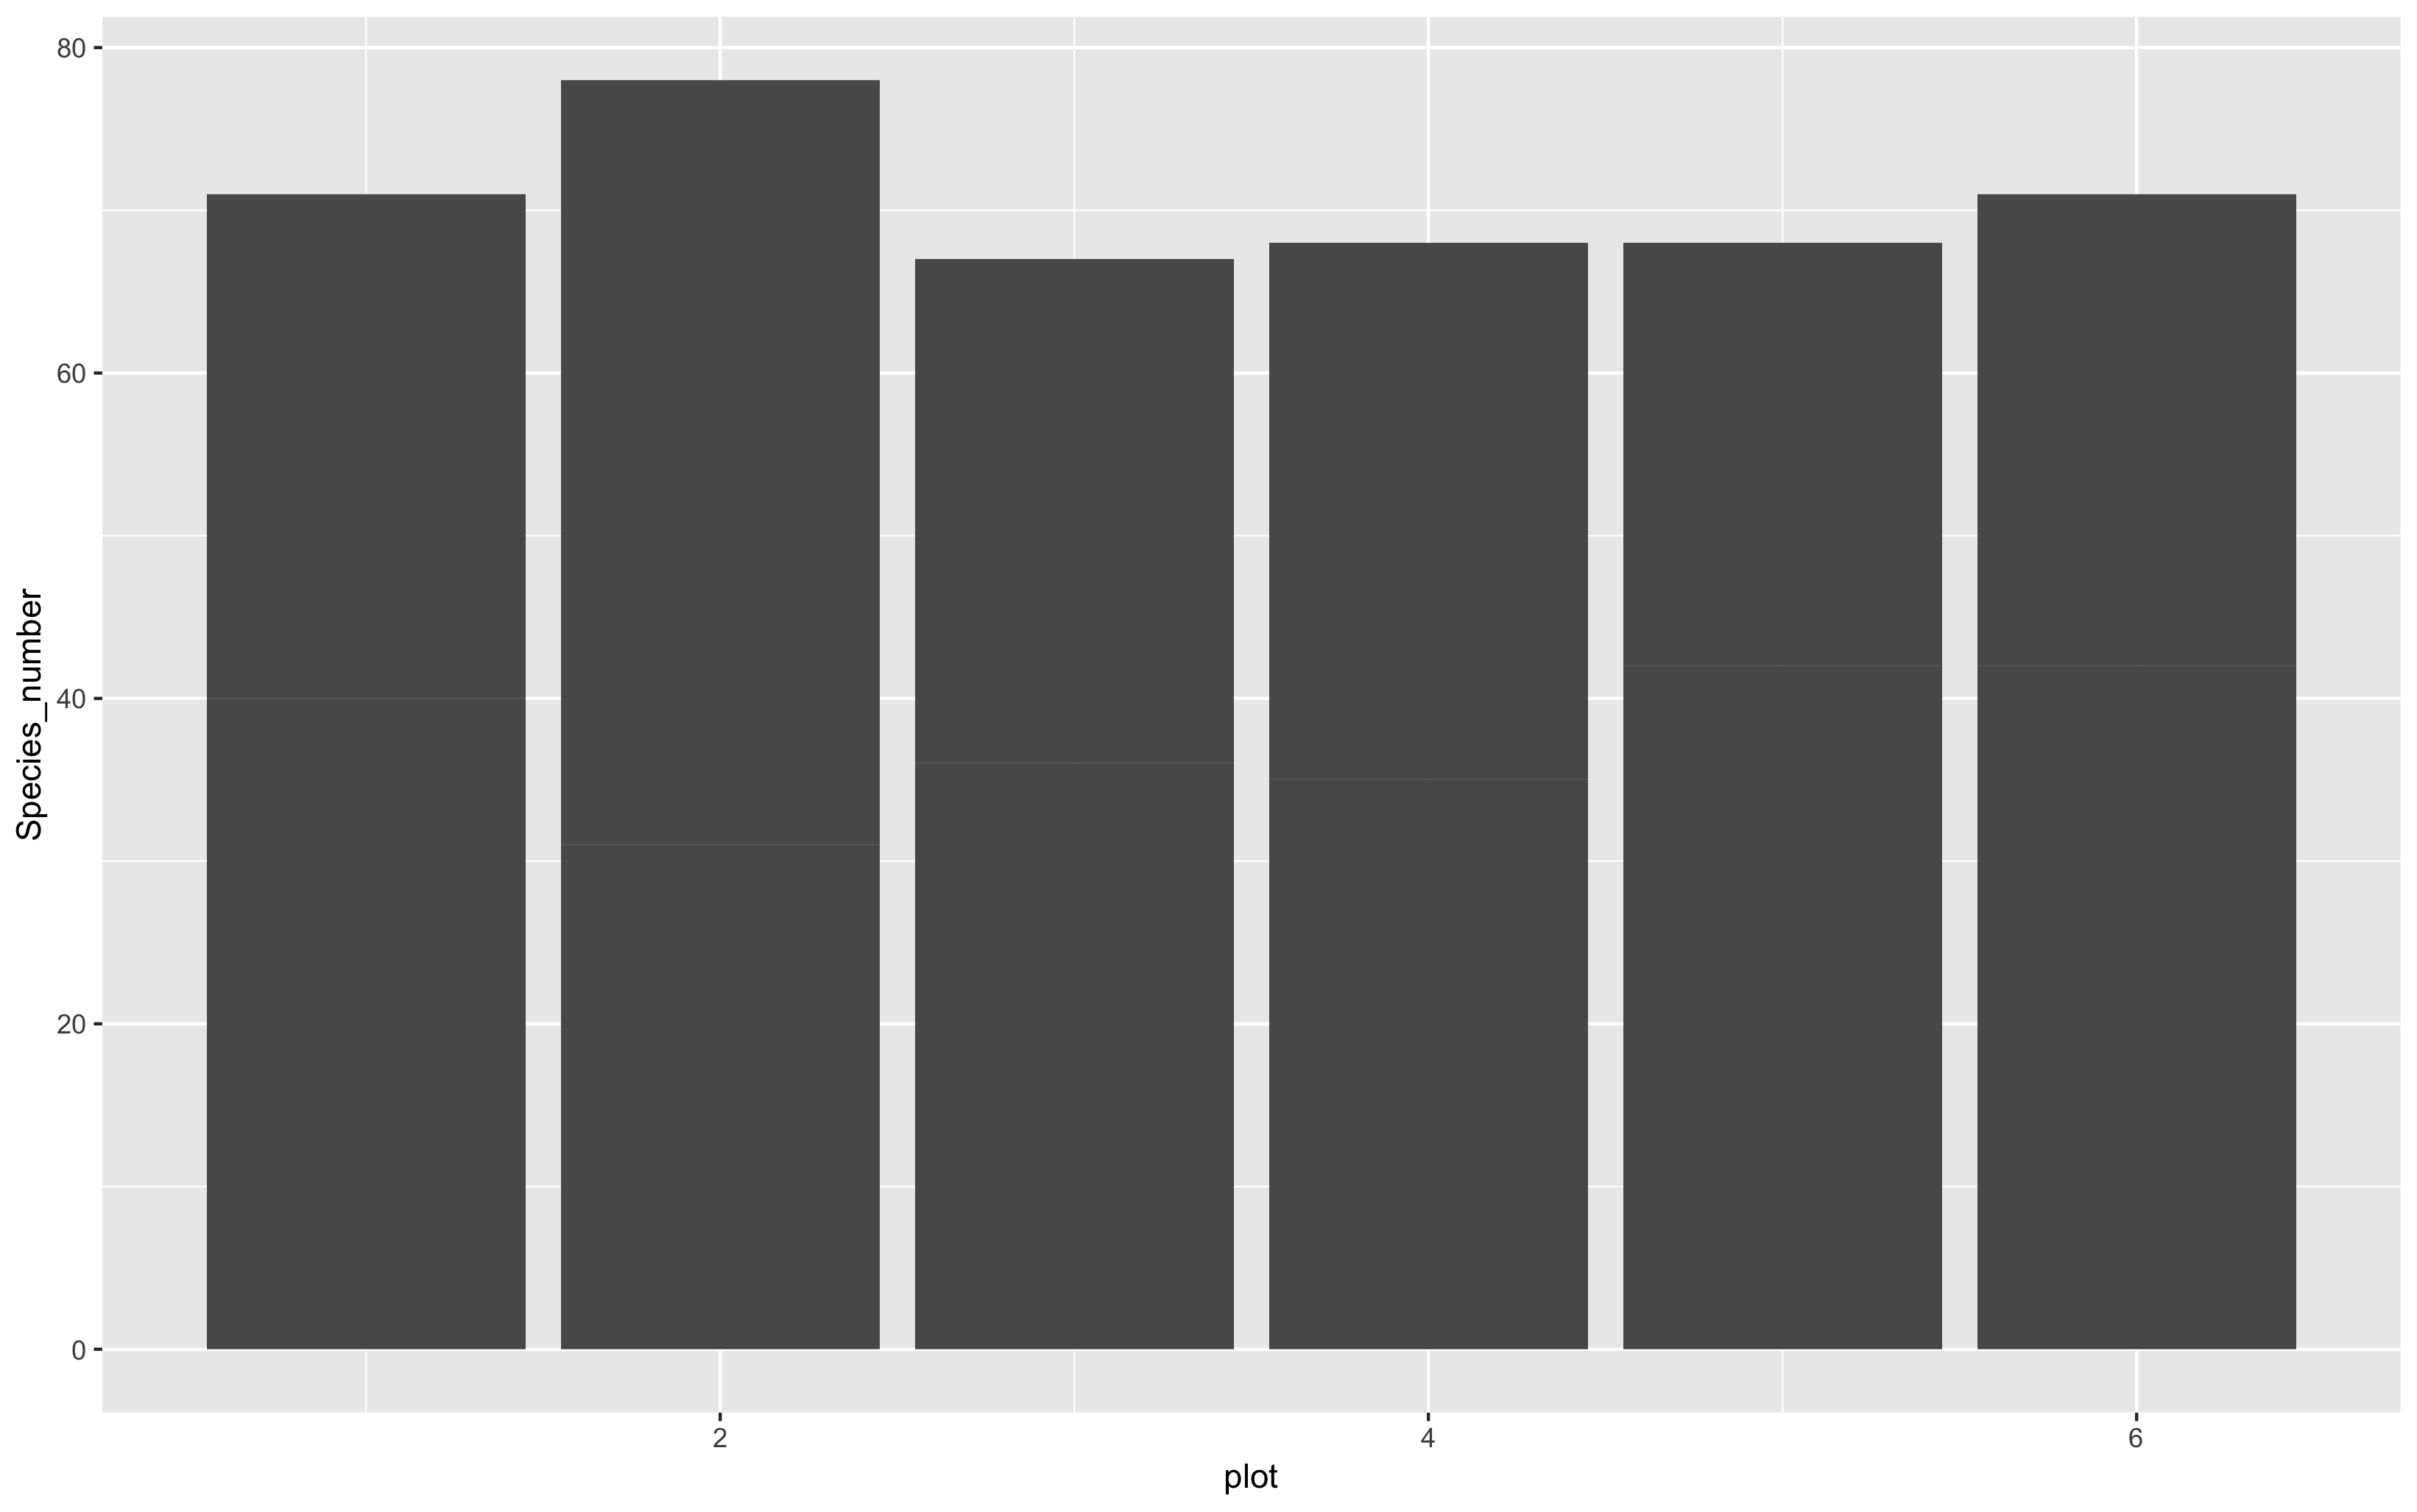 Basic ggplot2 bar plot